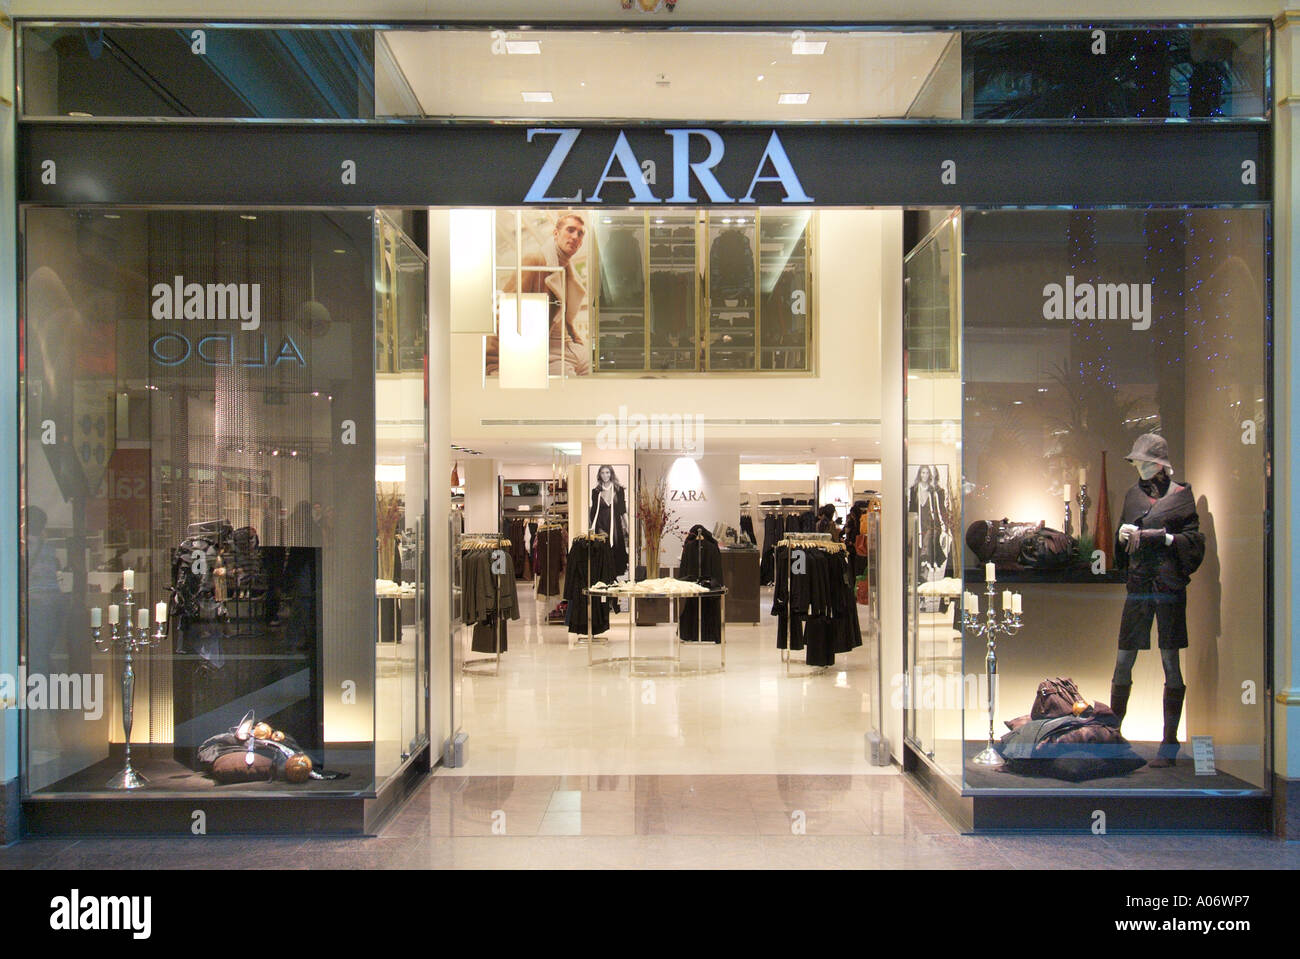 zara shop store trafford centre uk united kingdom england europe gb stock photo 5656870 alamy. Black Bedroom Furniture Sets. Home Design Ideas